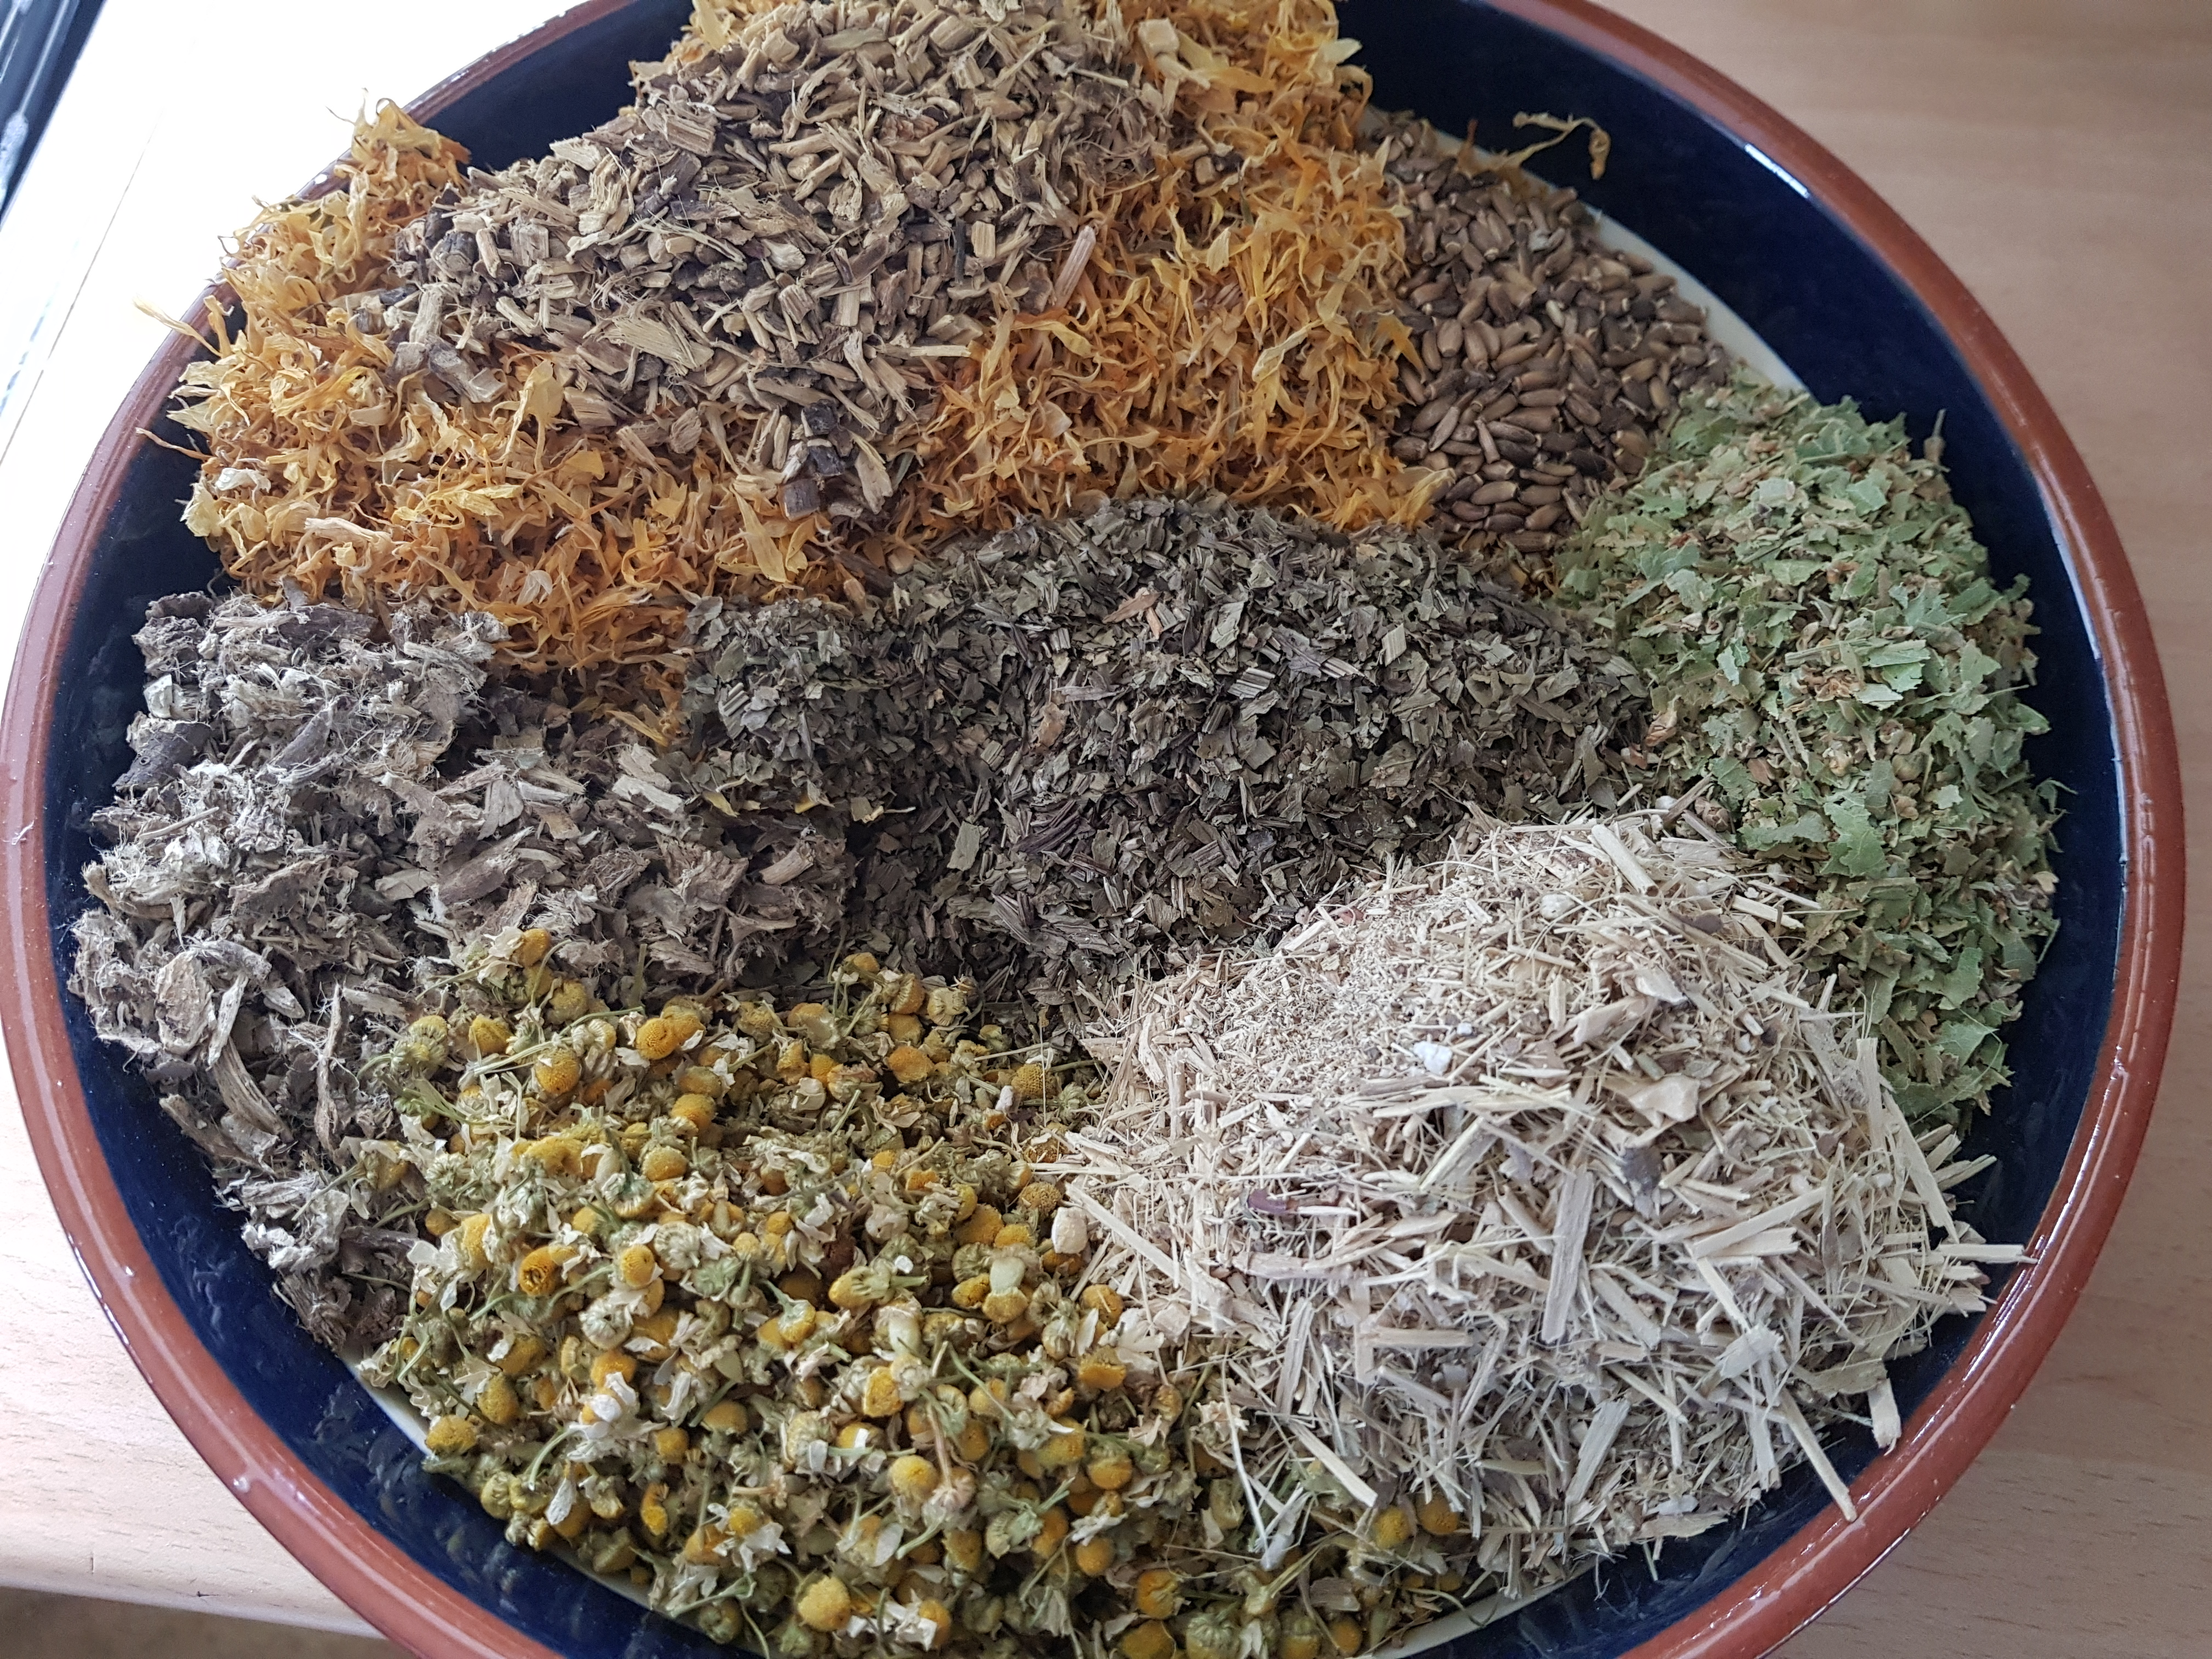 Photo of dried herbs in a bowl